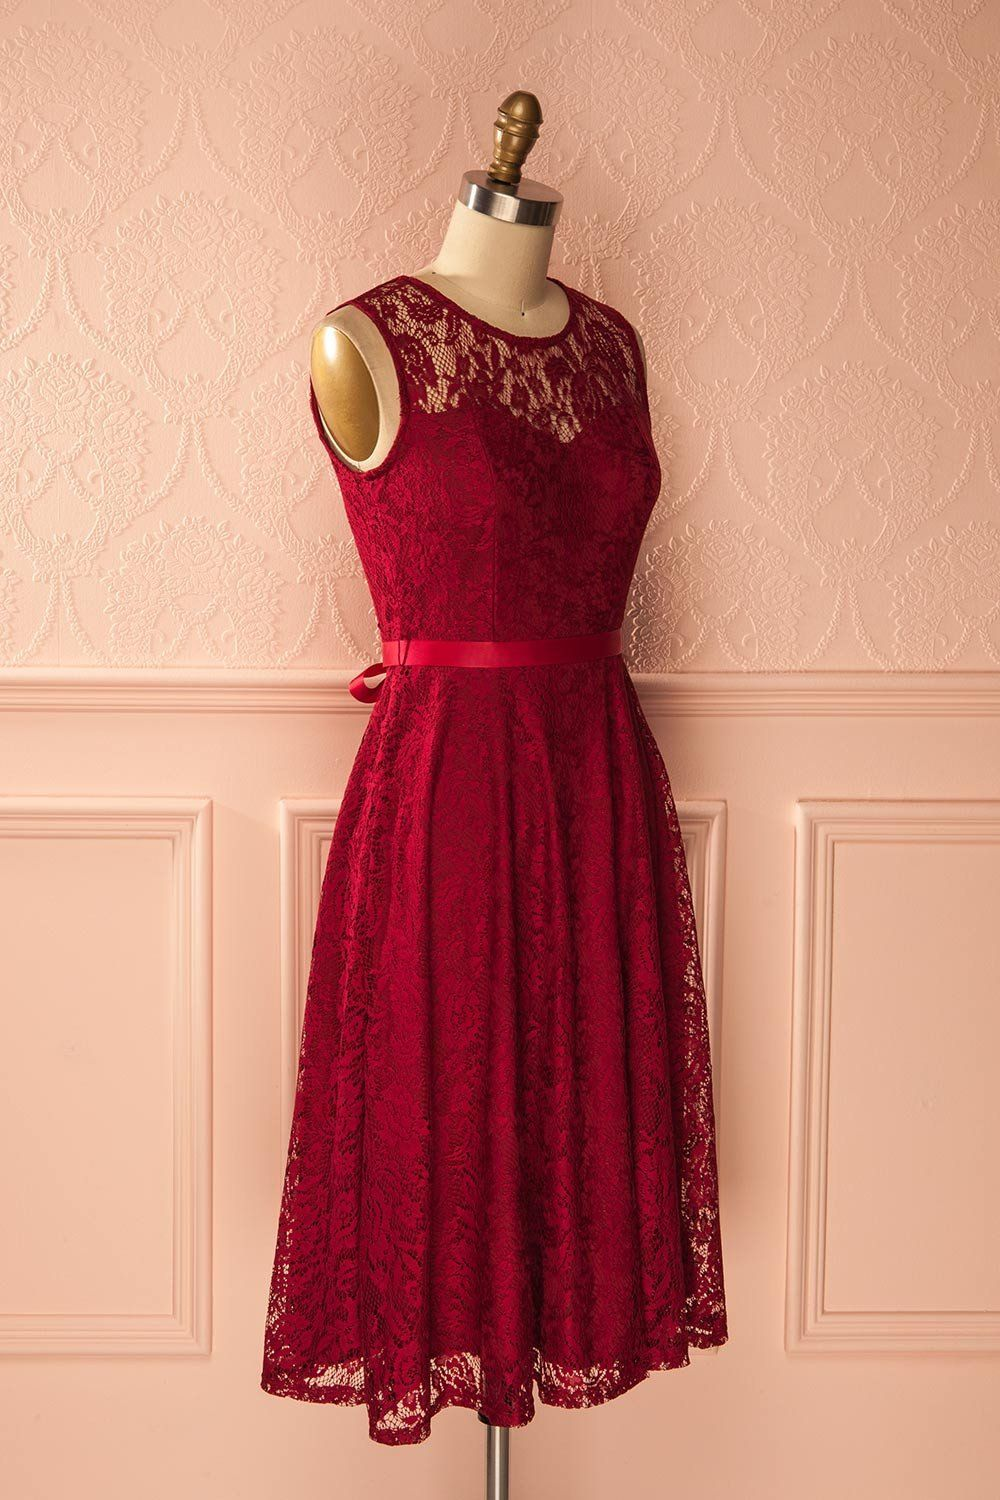 Varinia Vin - Burgundy lace midi dress